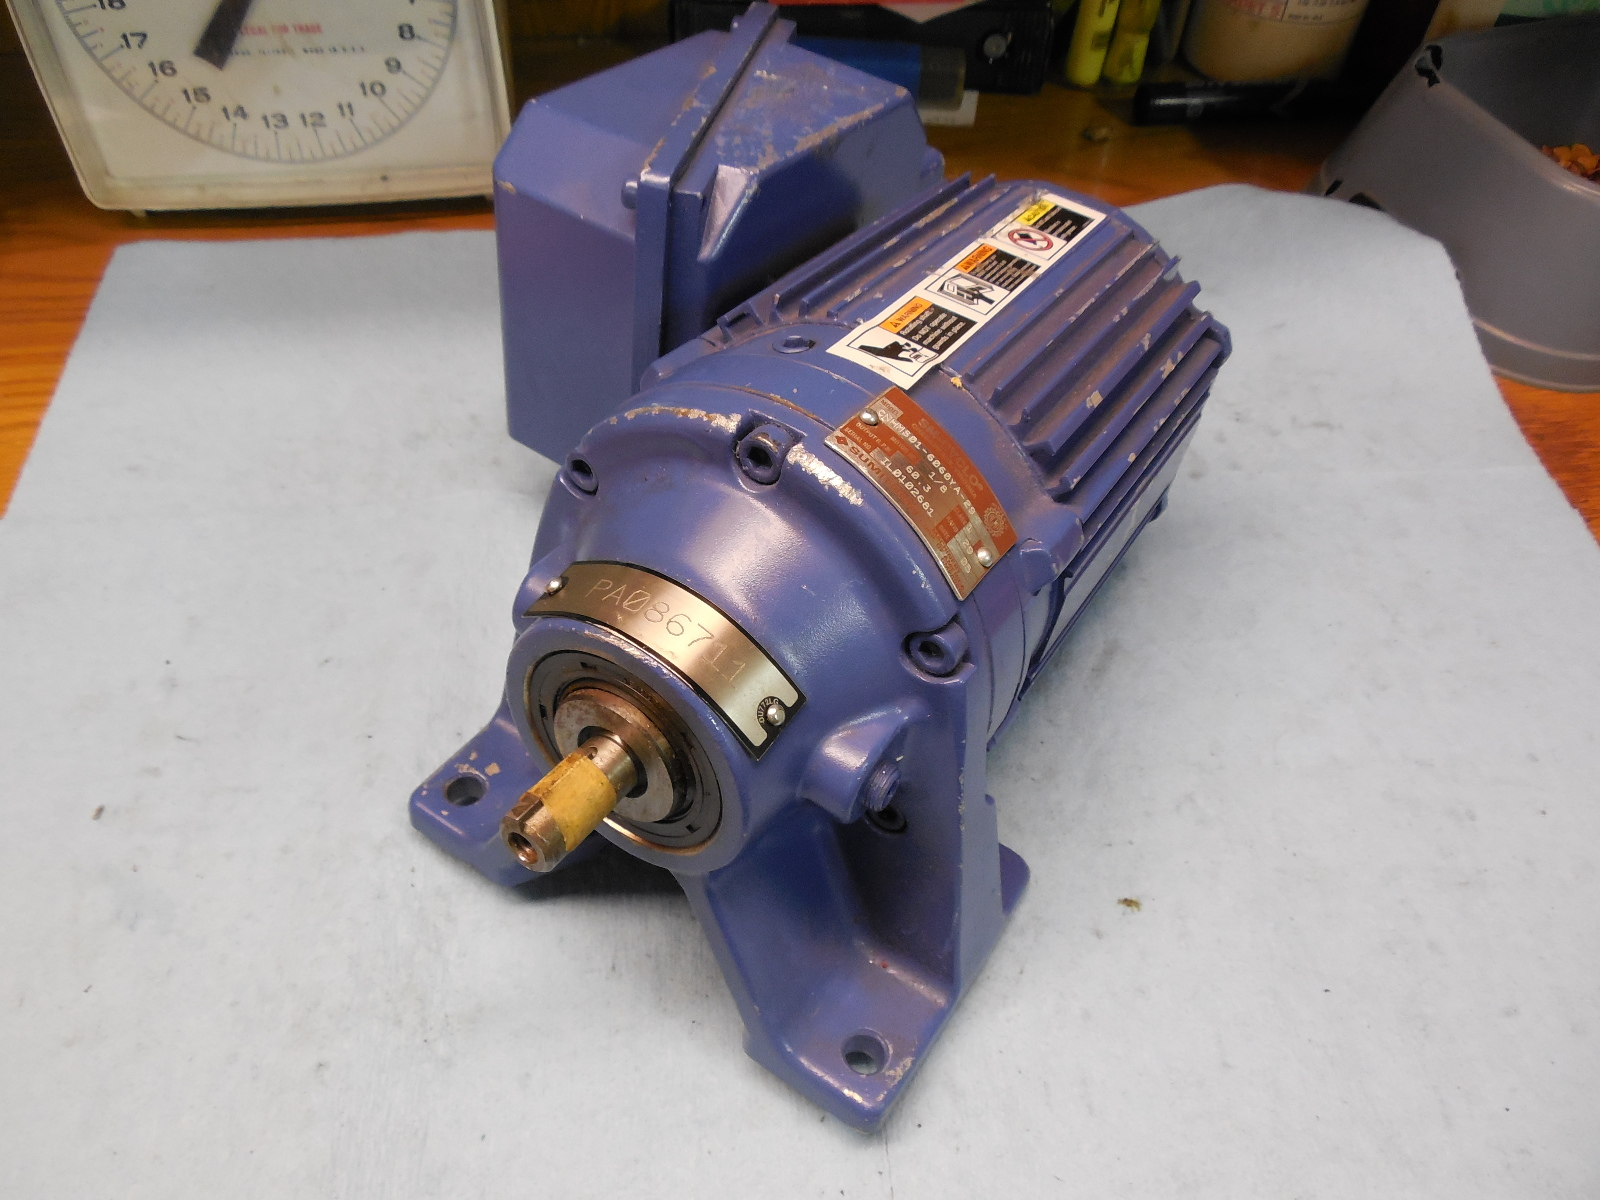 Sumitomo Sm Cyclo Cnhms01 6060ya 29 Gear Motor 1 8 Hp Machine Shop Tooling M J Tooling Llc